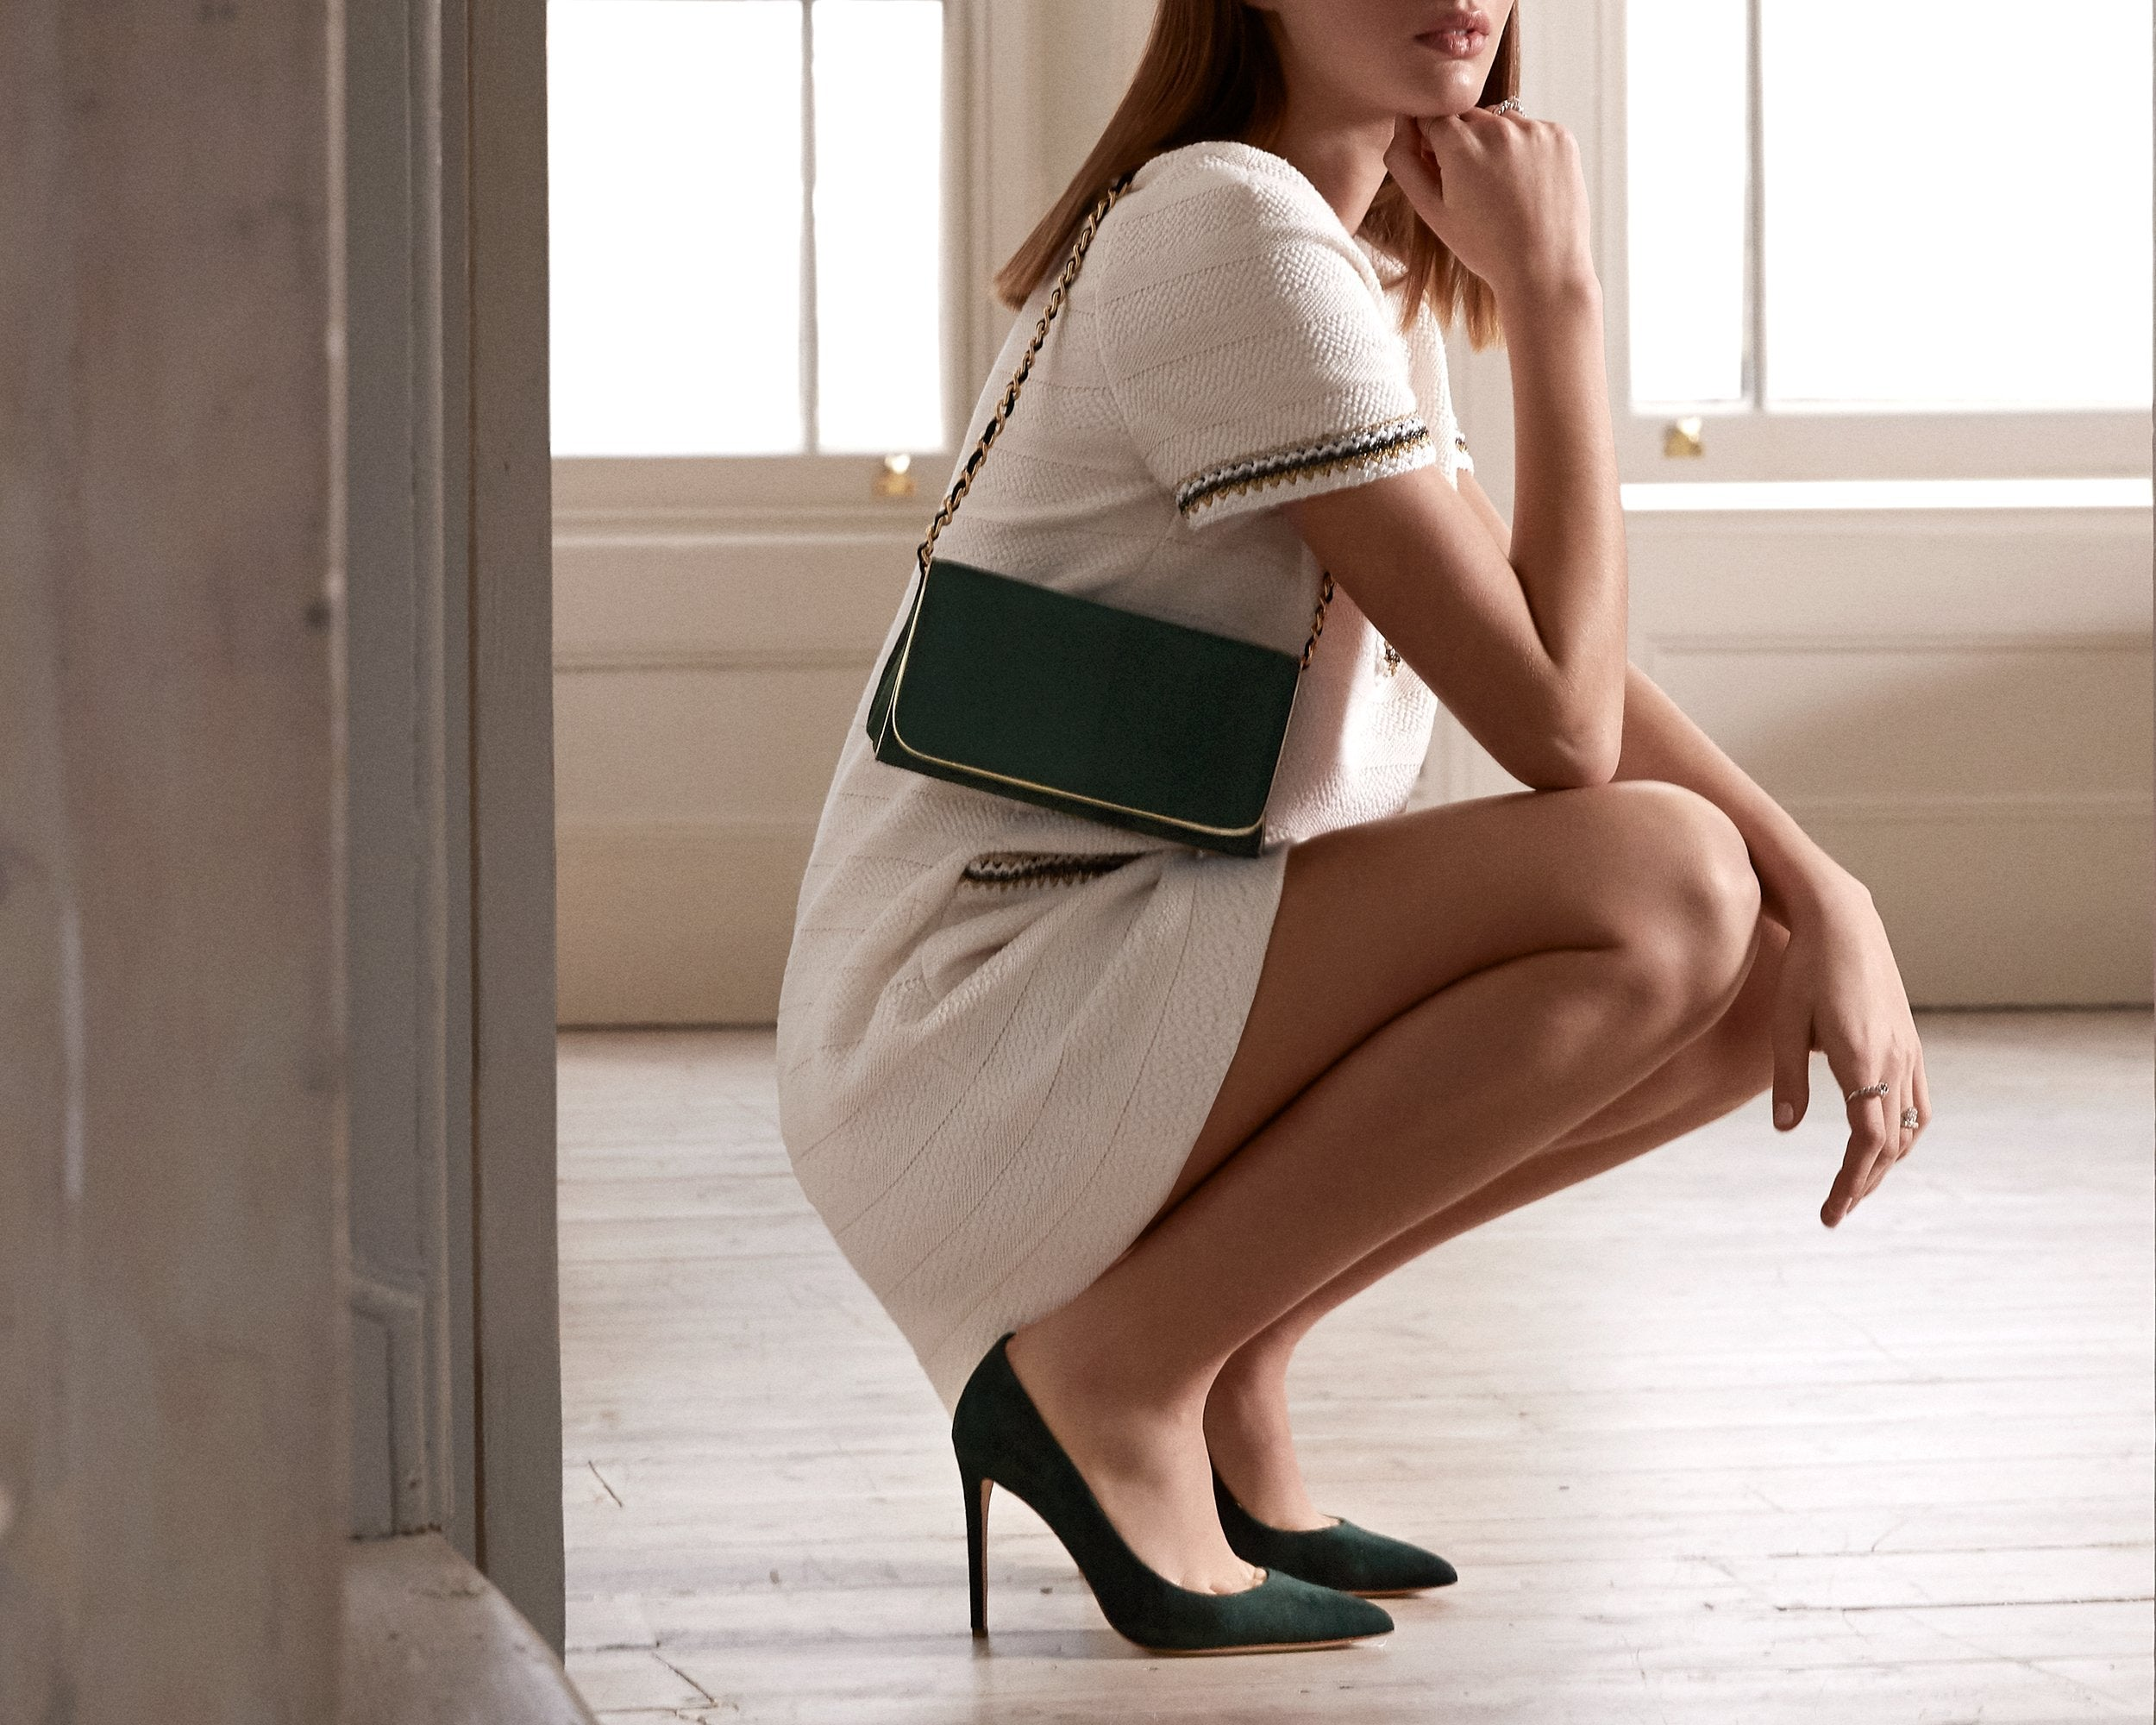 Rebecca Greenery Court Shoes And Clutch Bag By Emmy London